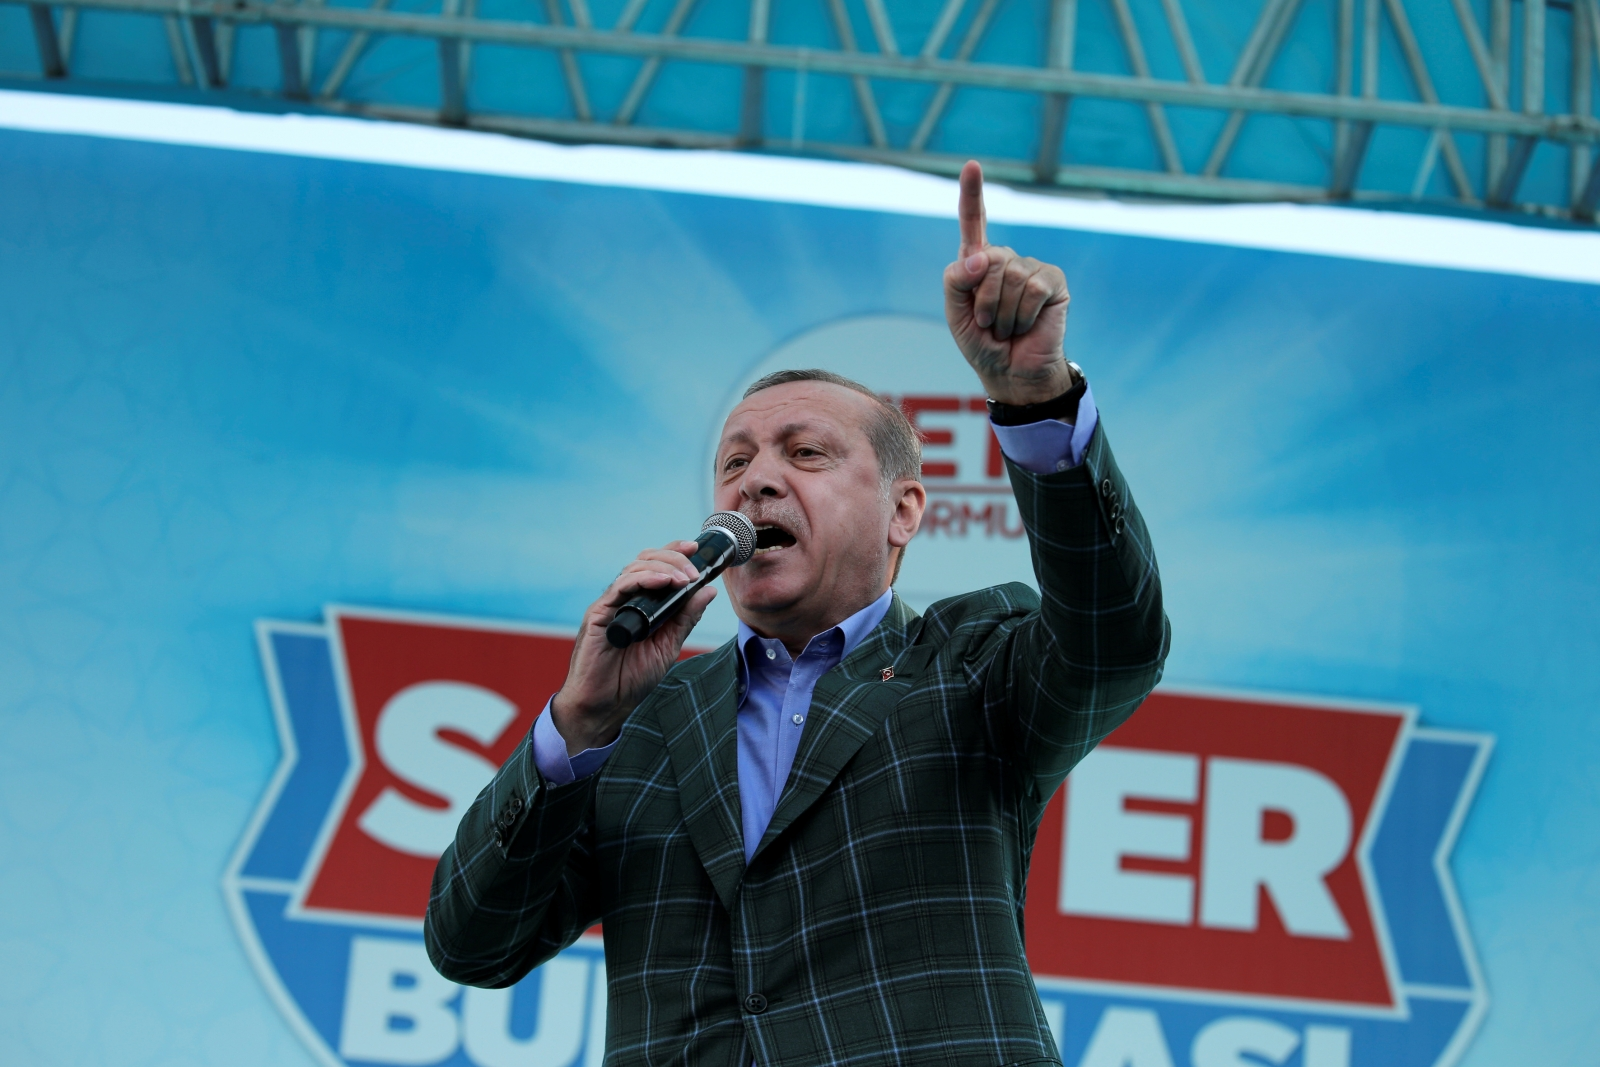 Turkey vote on expanding Erdogan powers 'unequal'